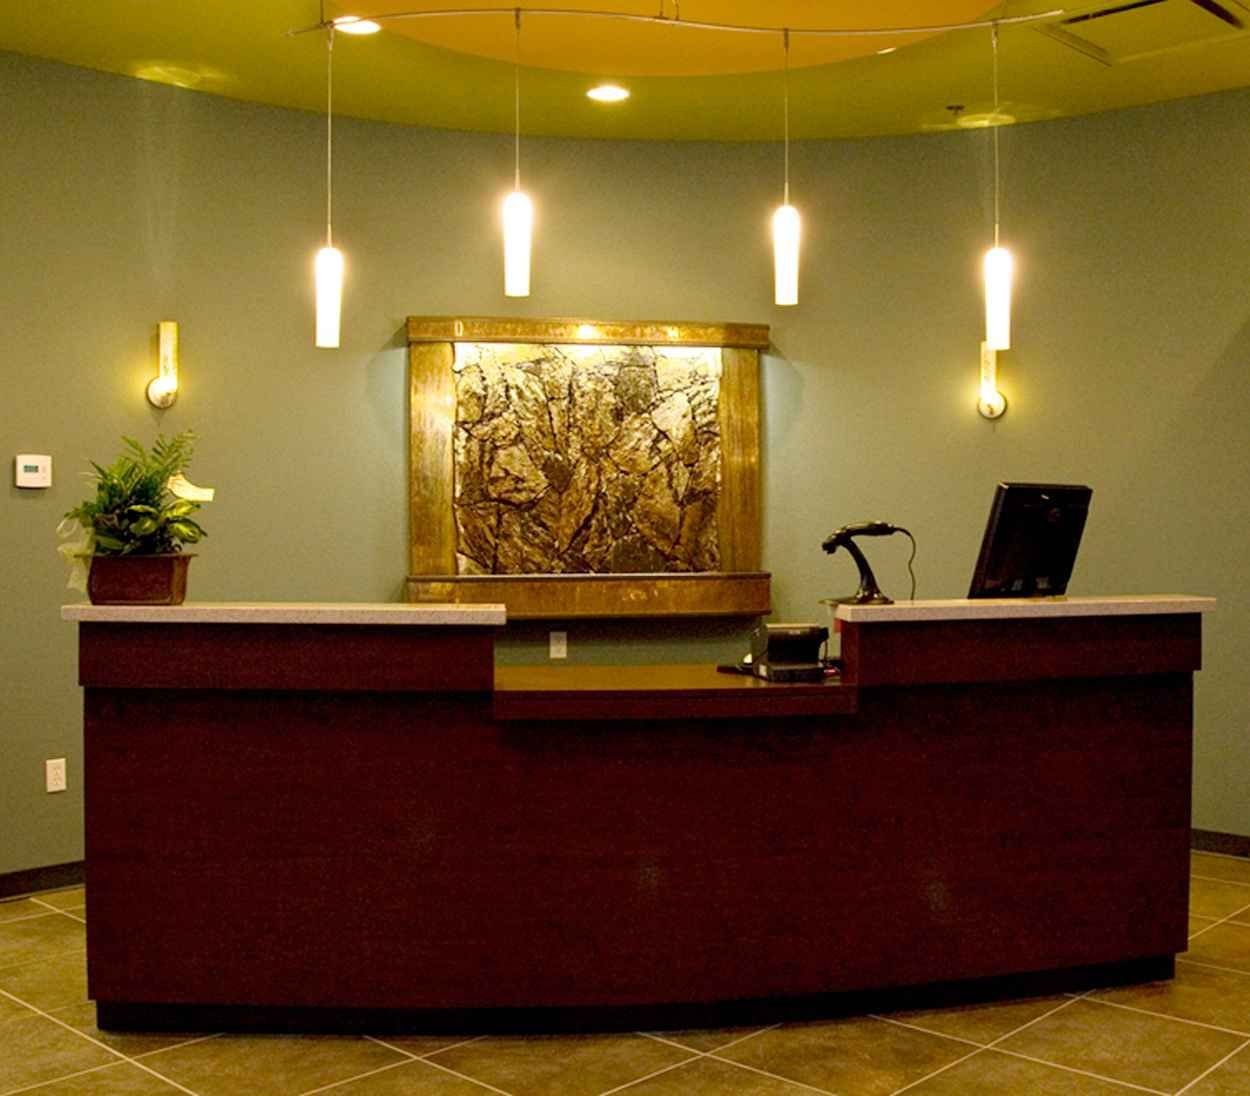 Reception Area Decoration For Attracting Welcoming Room | FB ...